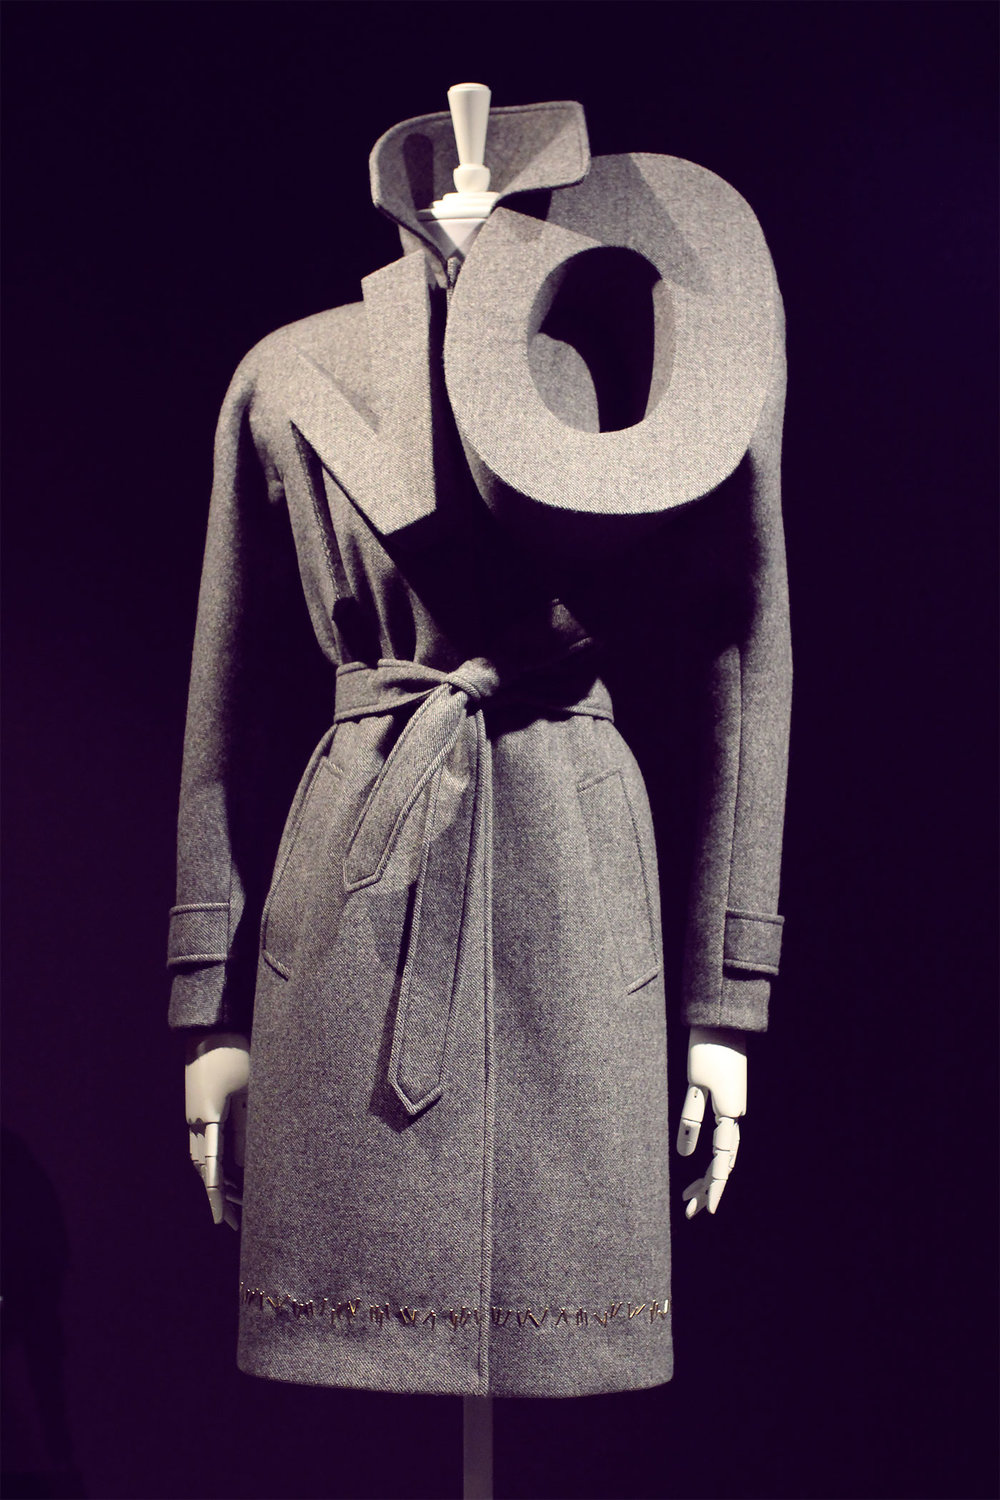 'NO' - Fashion moves too fast, so they incorporated their thoughts into the clothing